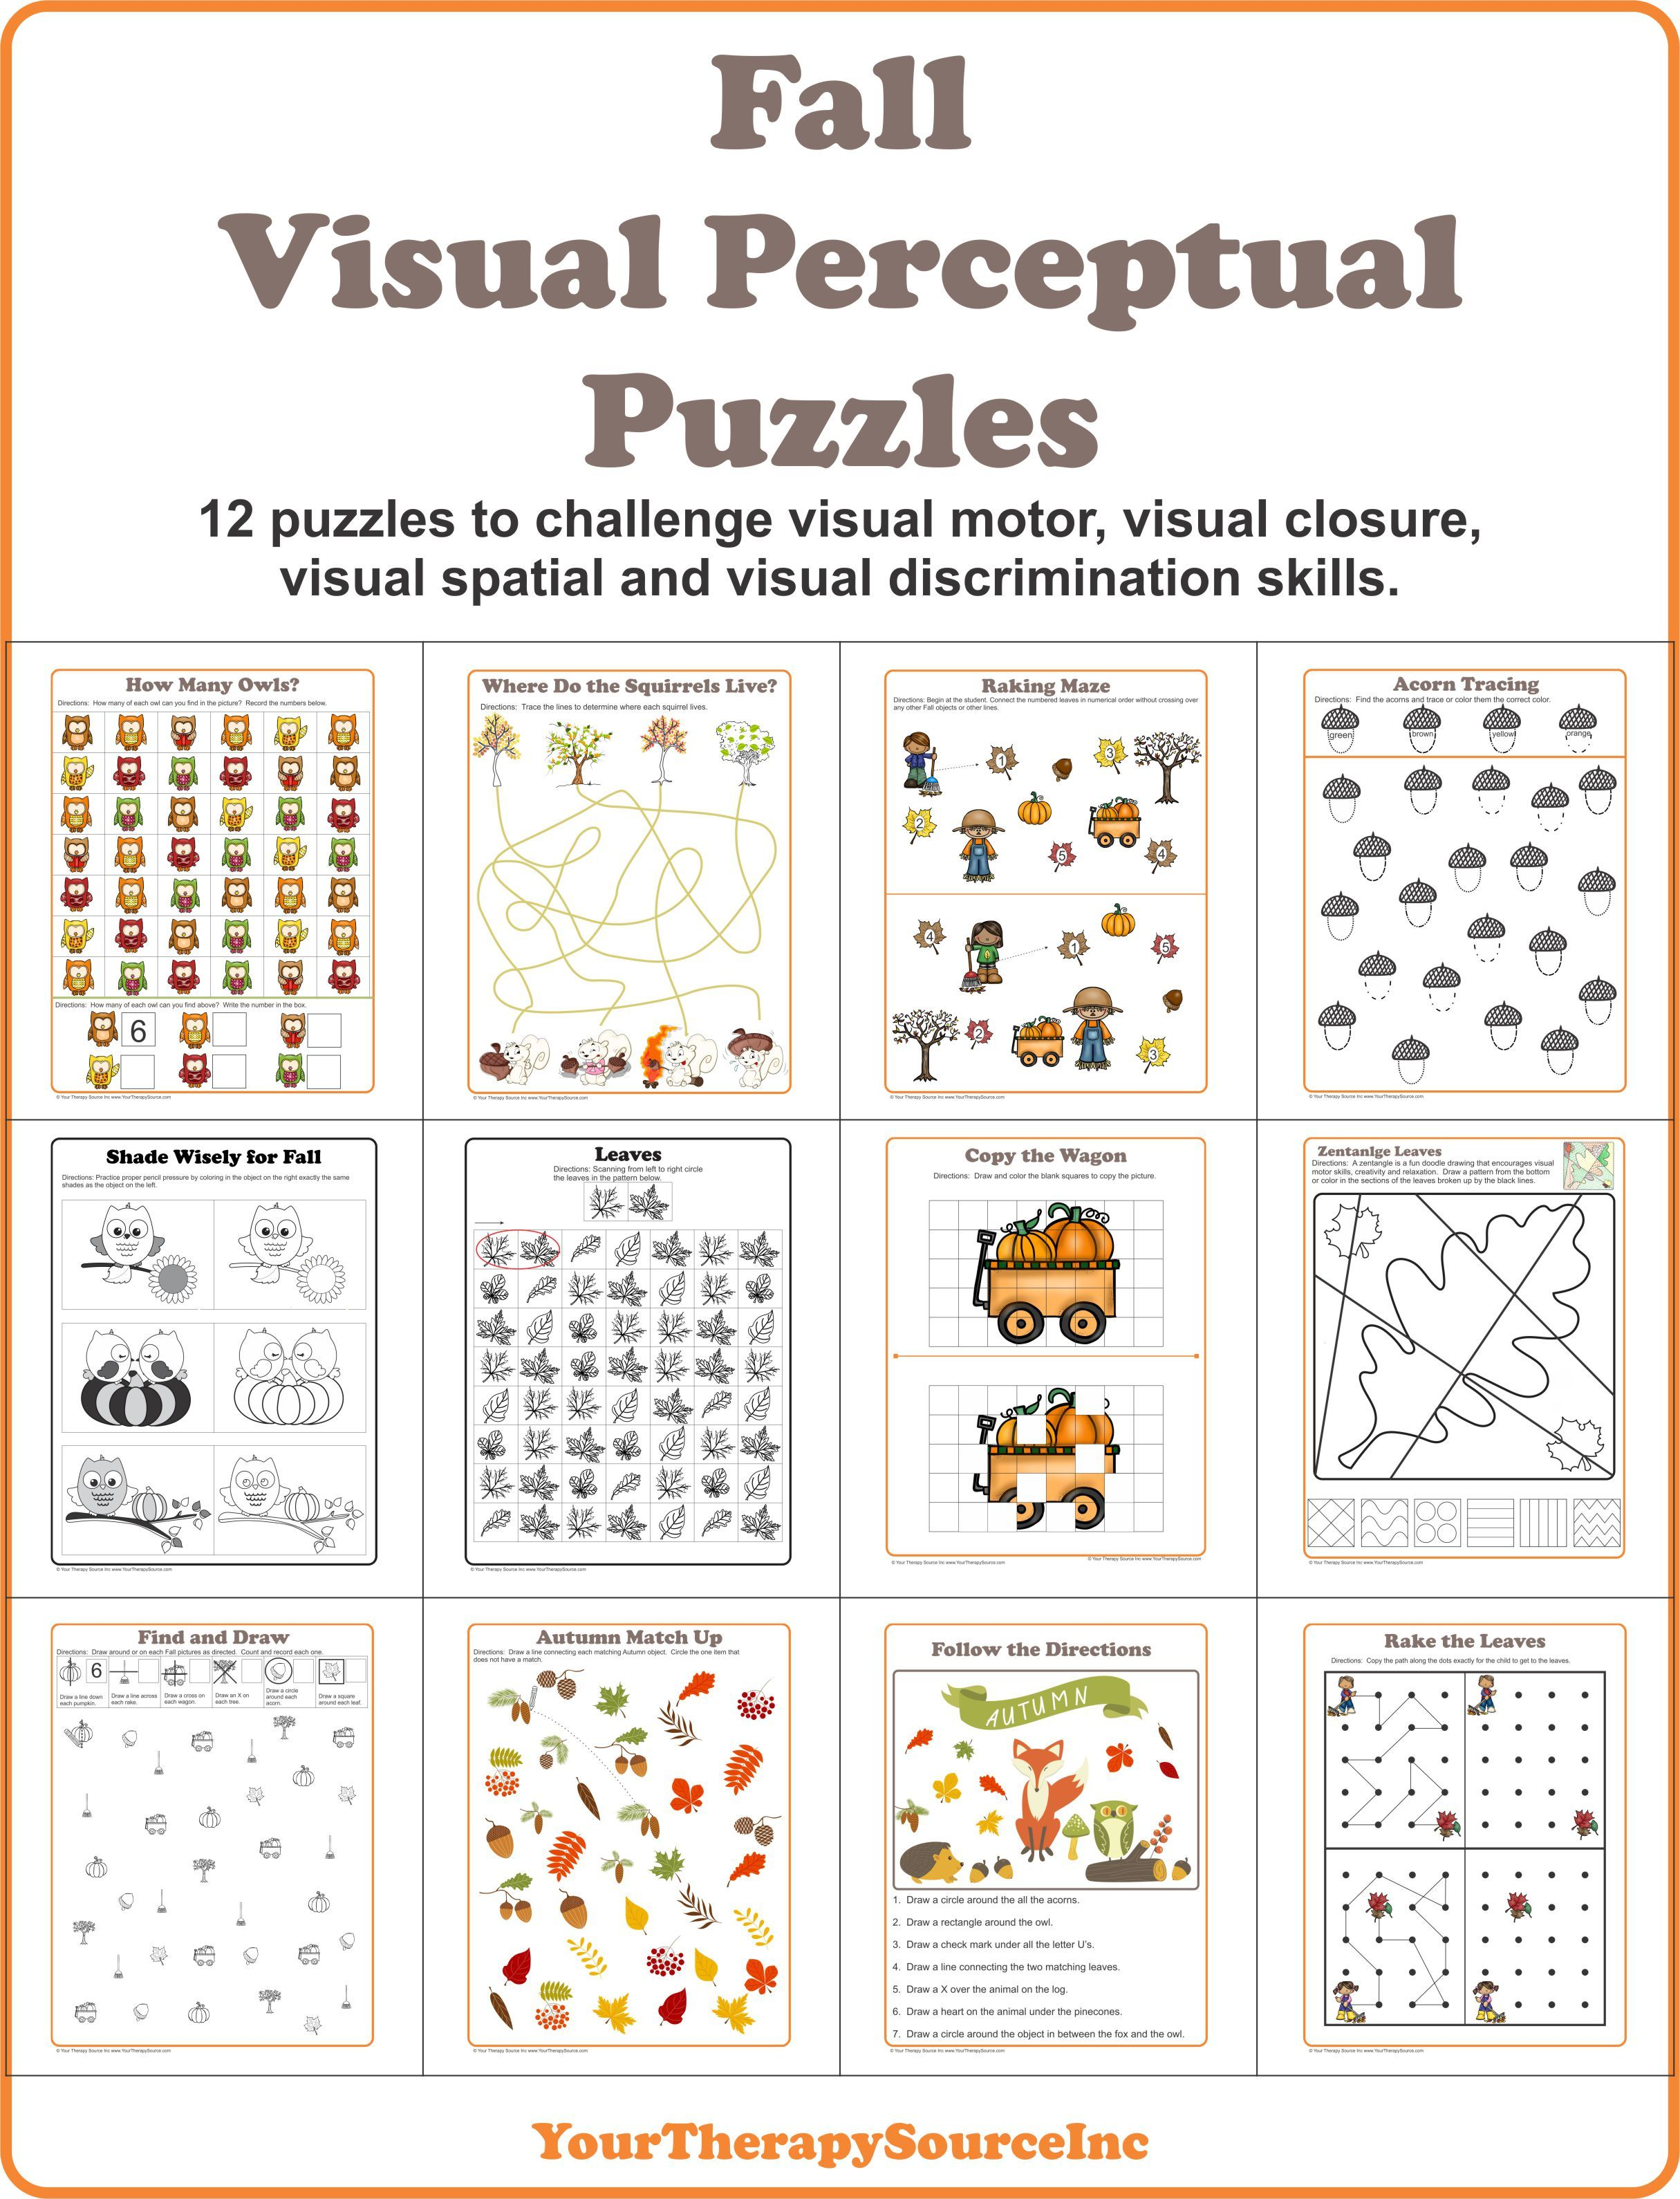 Fall Visual Perceptual Puzzles | Arbeitsblätter, Herbst und Schule